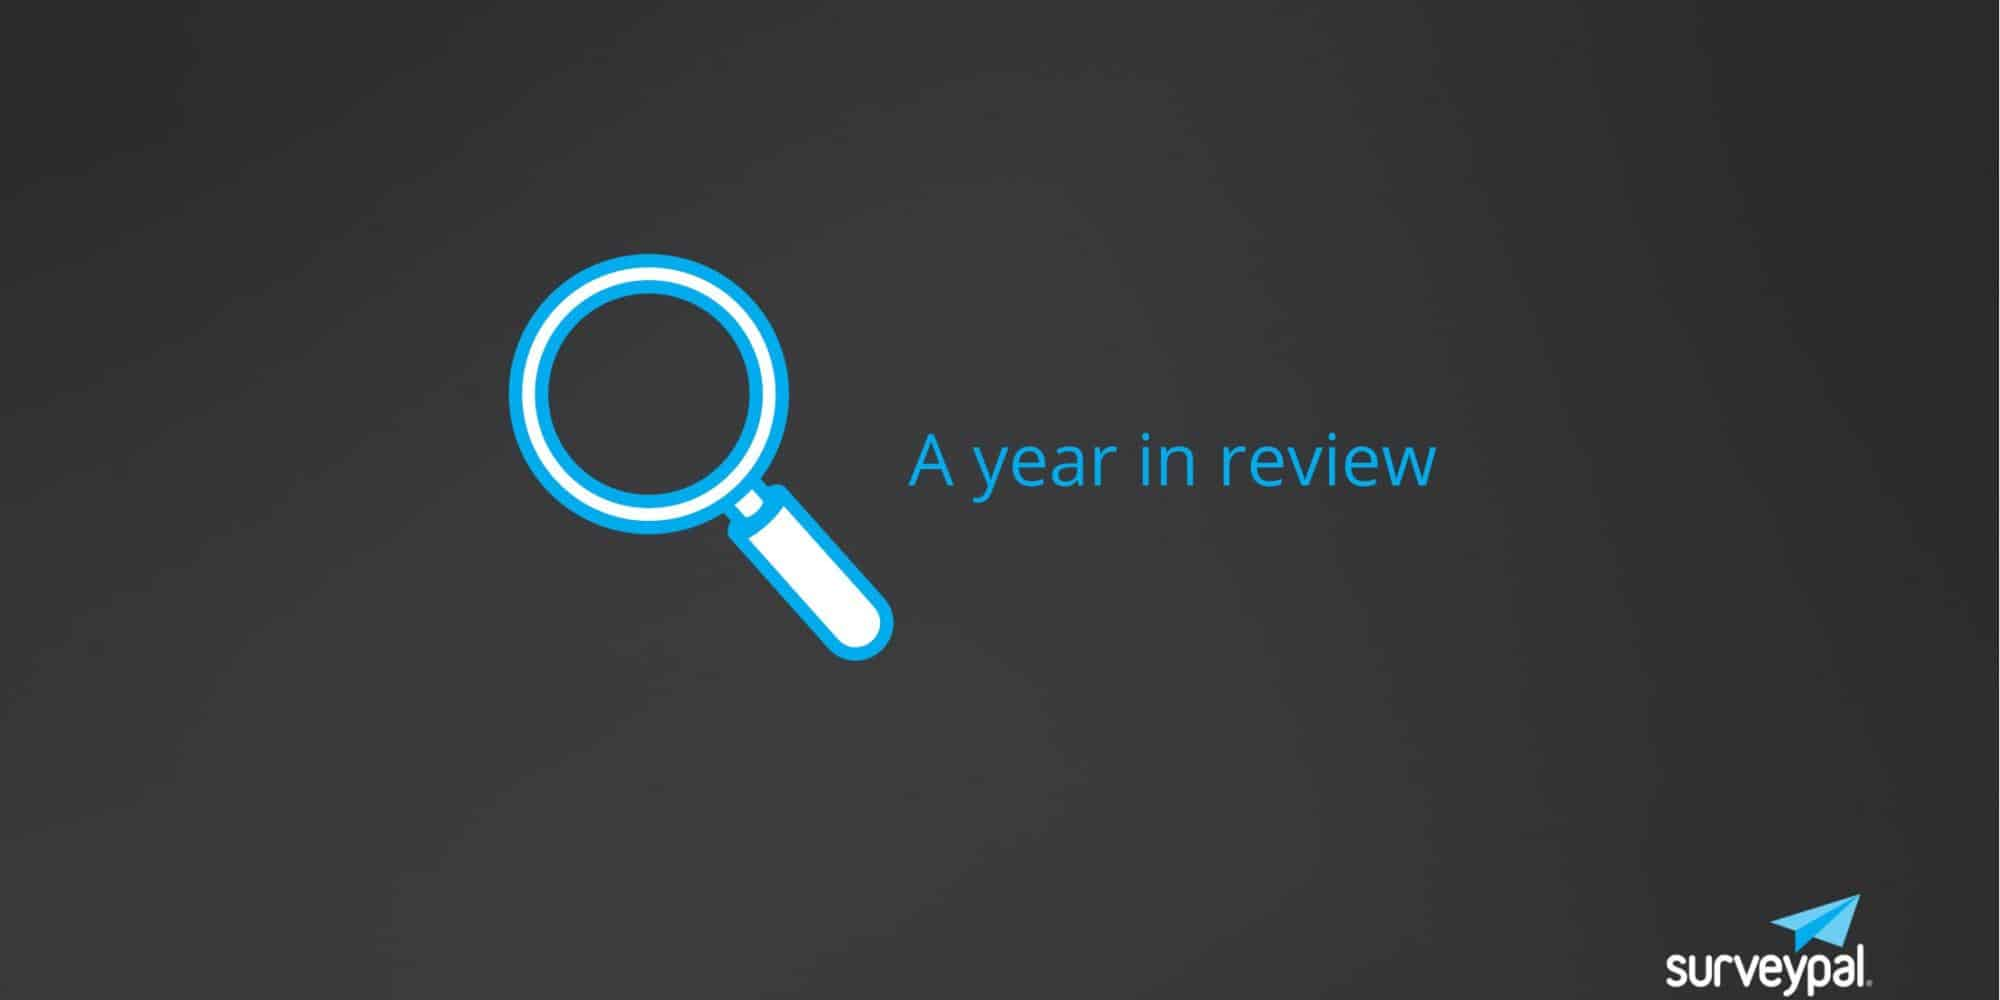 Text: A year in review, against a dark background